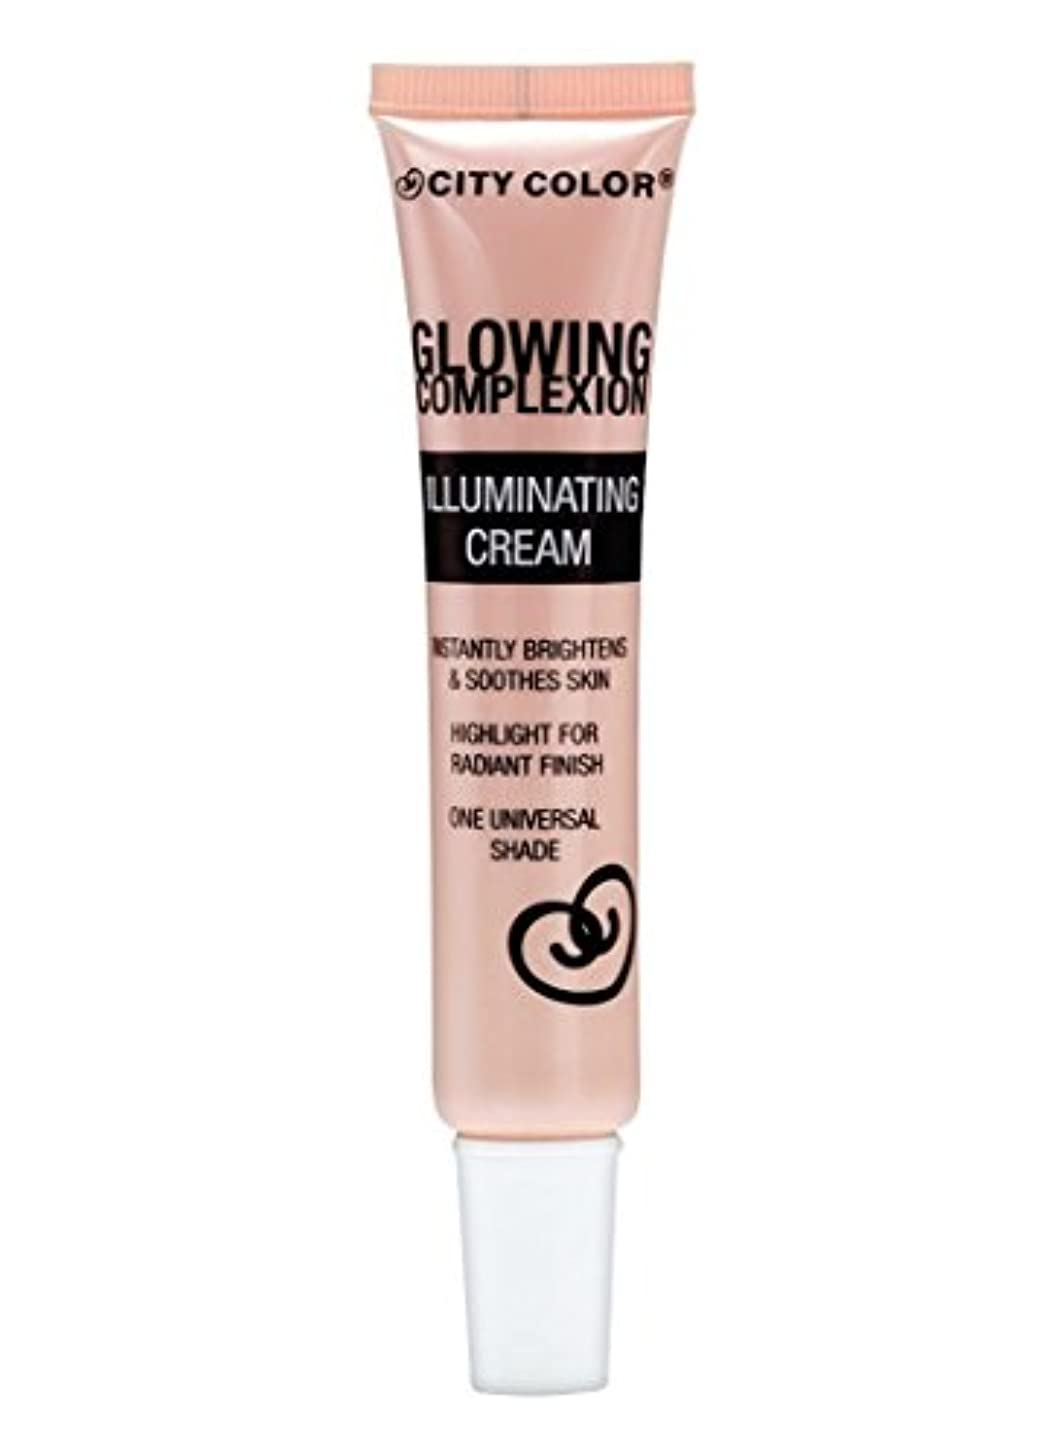 日曜日洞窟失われたCITY COLOR Glowing Complexion Illuminating Cream - Net Wt. 1.015 fl. oz. / 30 mL (並行輸入品)